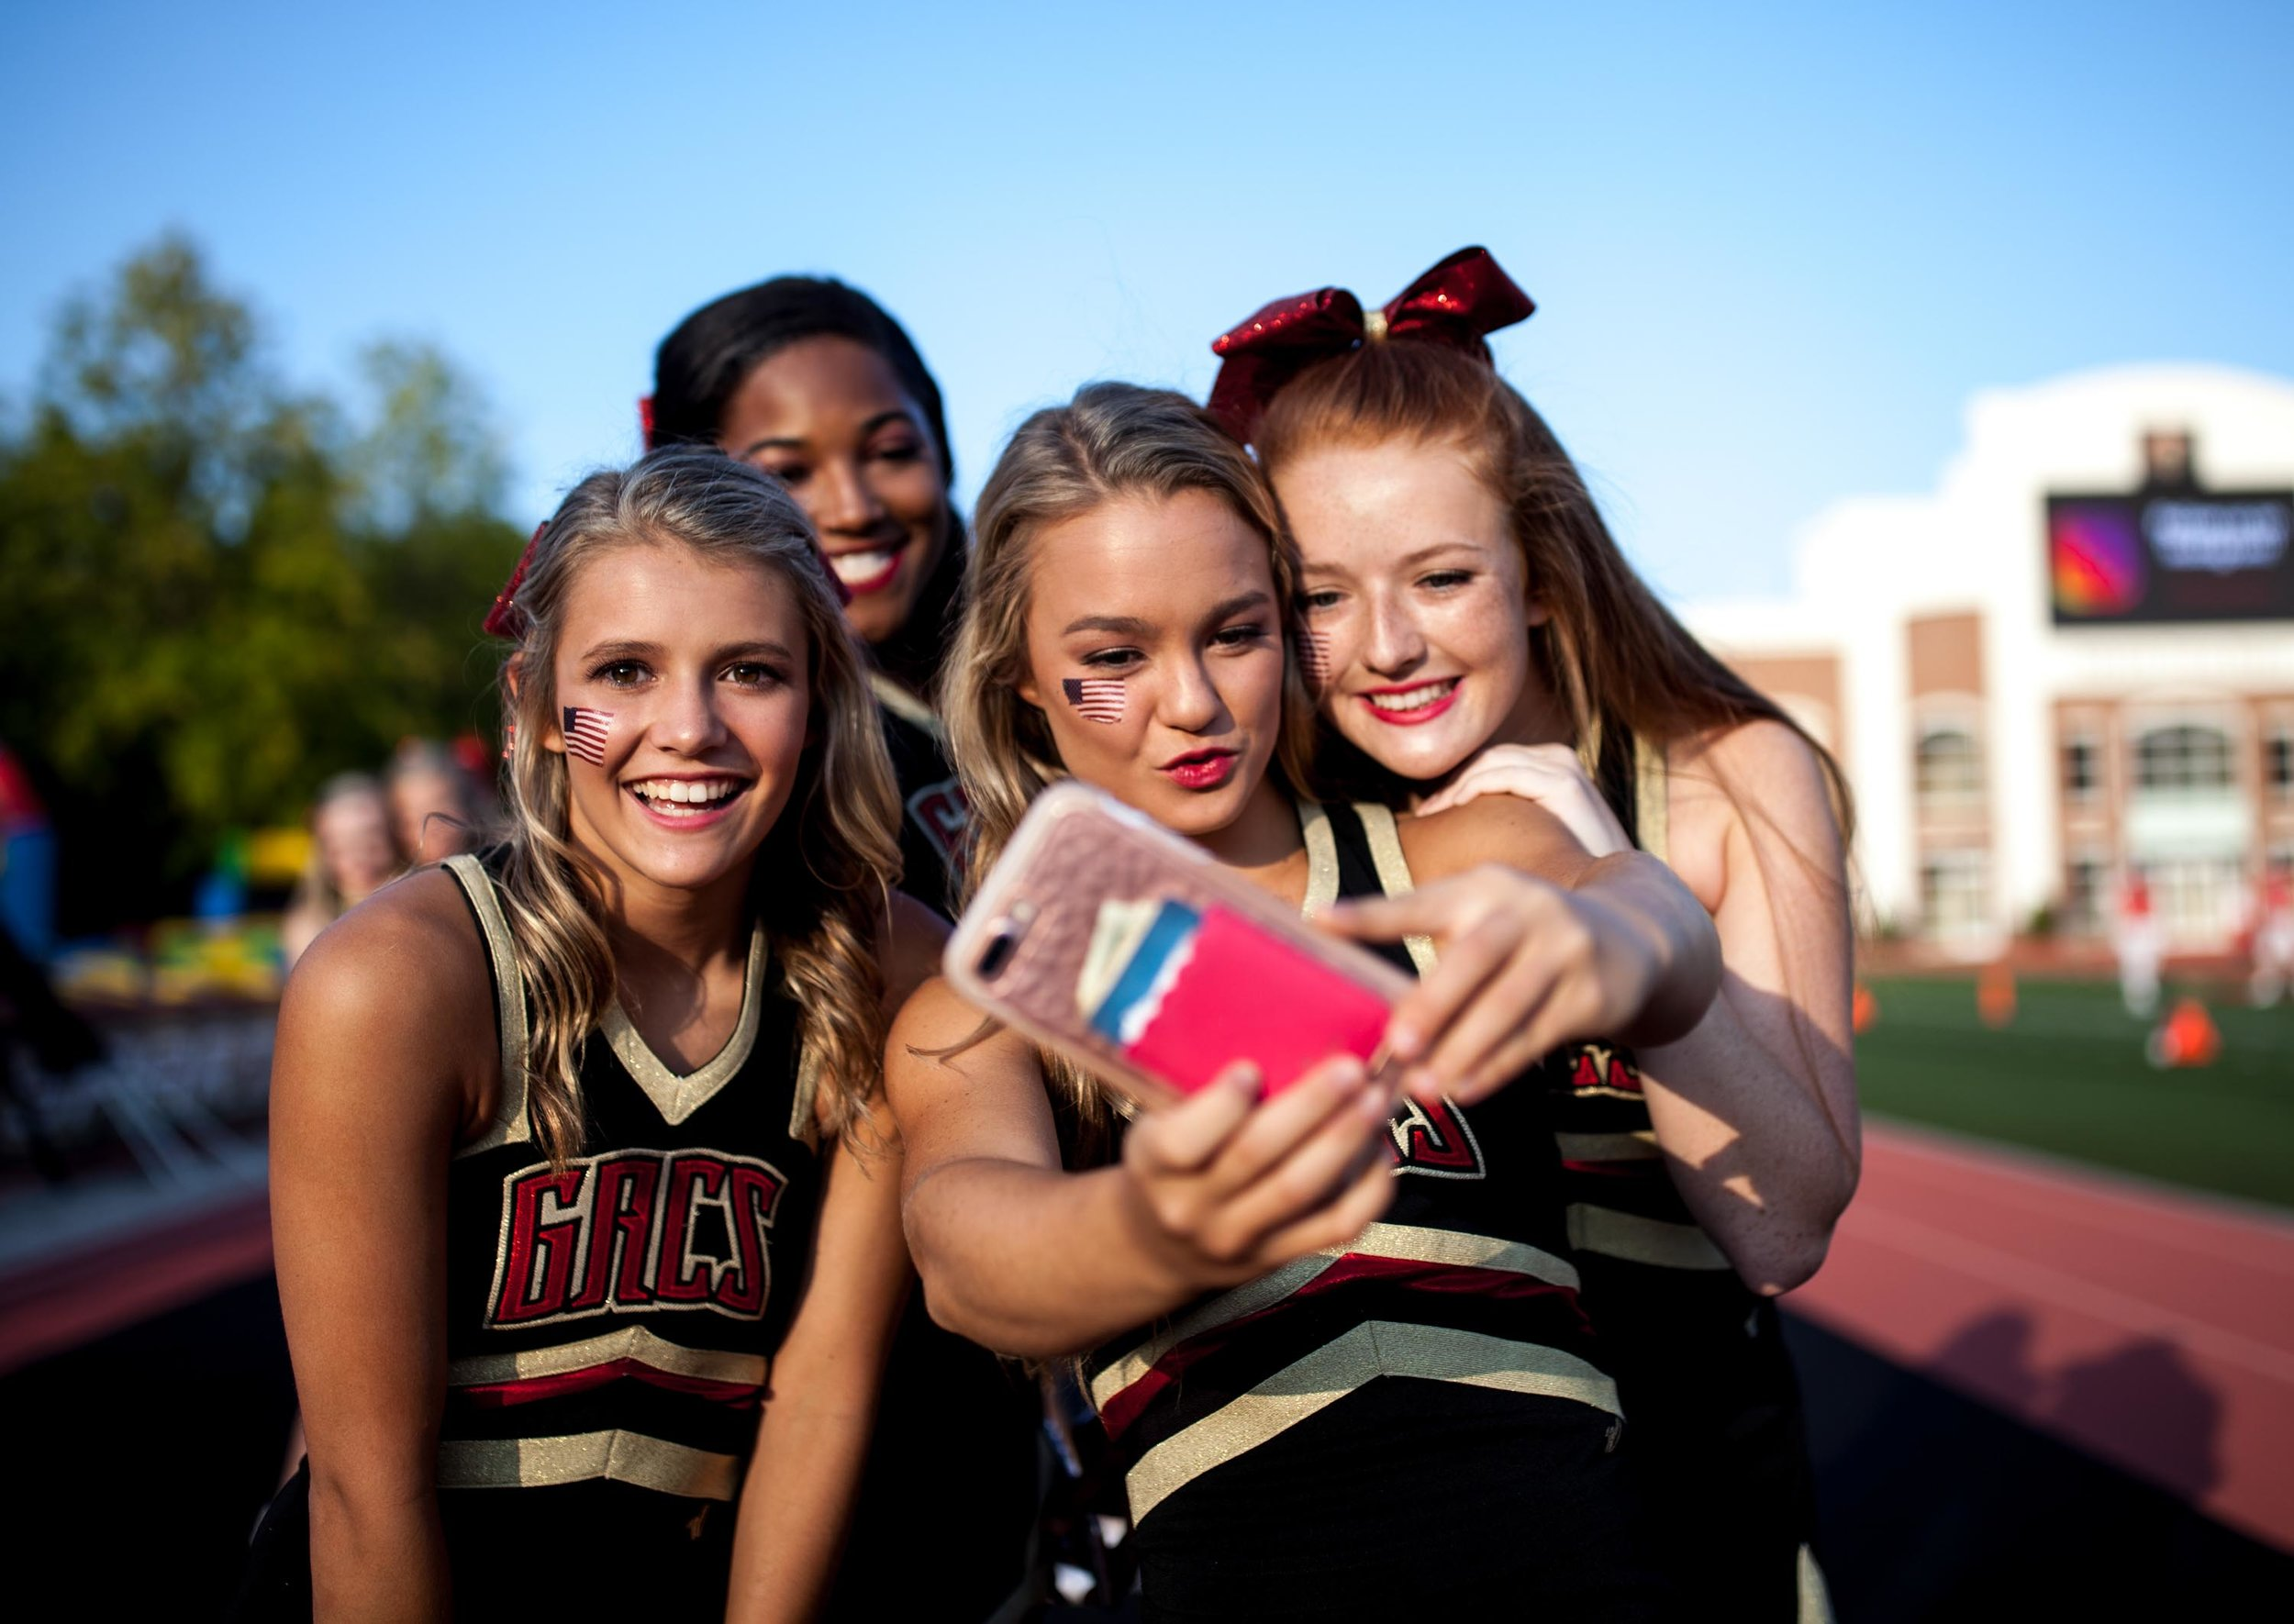 Greater Atlanta Christian cheerleaders pose for a photo before a high school football game against Valor Christian of Colorado, Friday, Sept. 8, 2017, in Norcross, Ga.Branden Camp for The AJC